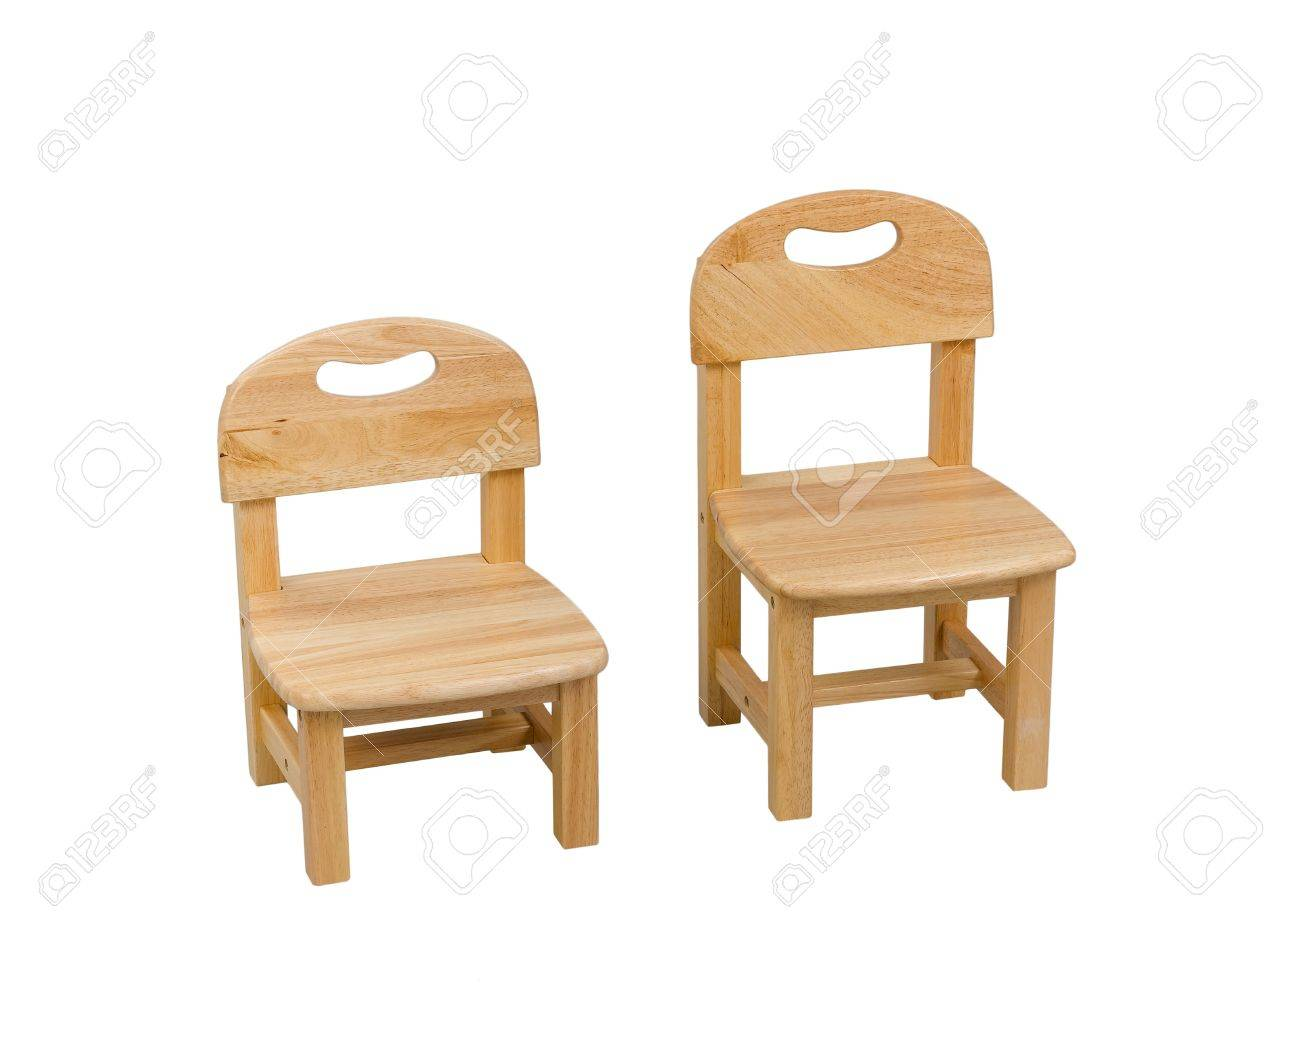 small wooden chair unusual bean bags chairs for kid isolated on white background stock photo 19222364